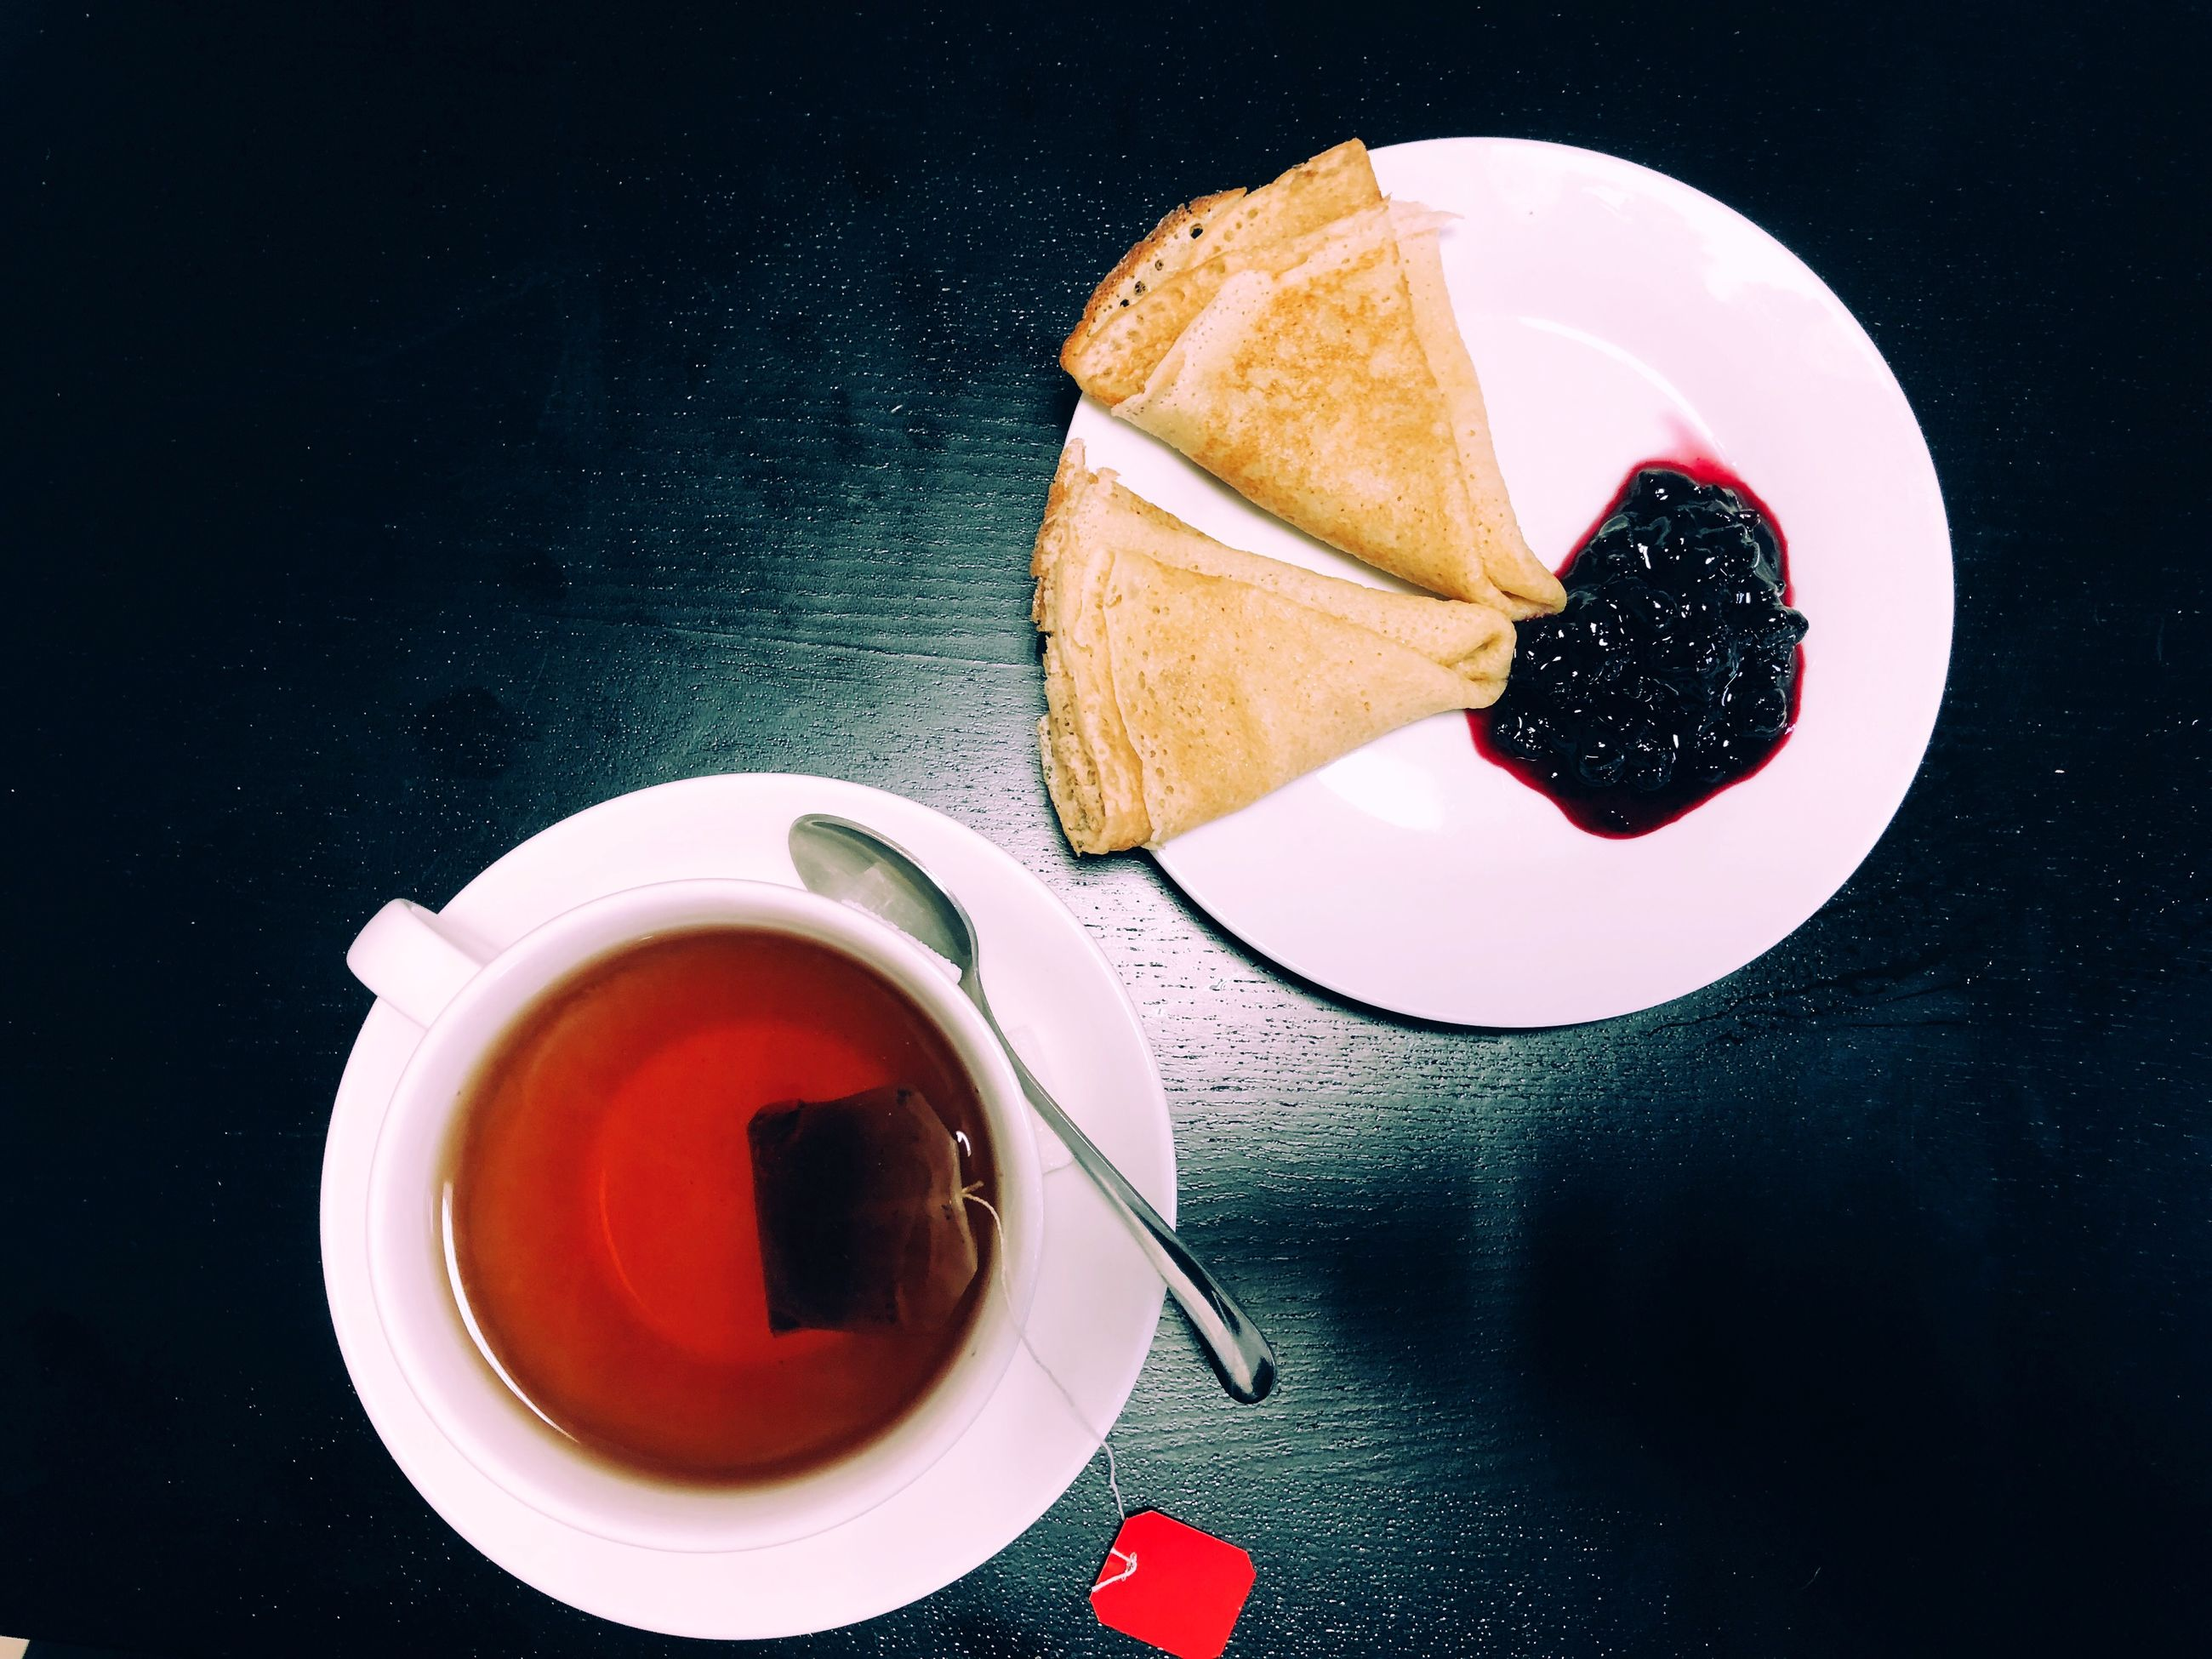 food and drink, refreshment, drink, freshness, table, still life, cup, food, coffee cup, sweet food, saucer, serving size, coffee - drink, plate, bread, high angle view, indoors, directly above, tea - hot drink, red, no people, breakfast, ready-to-eat, close-up, healthy eating, day